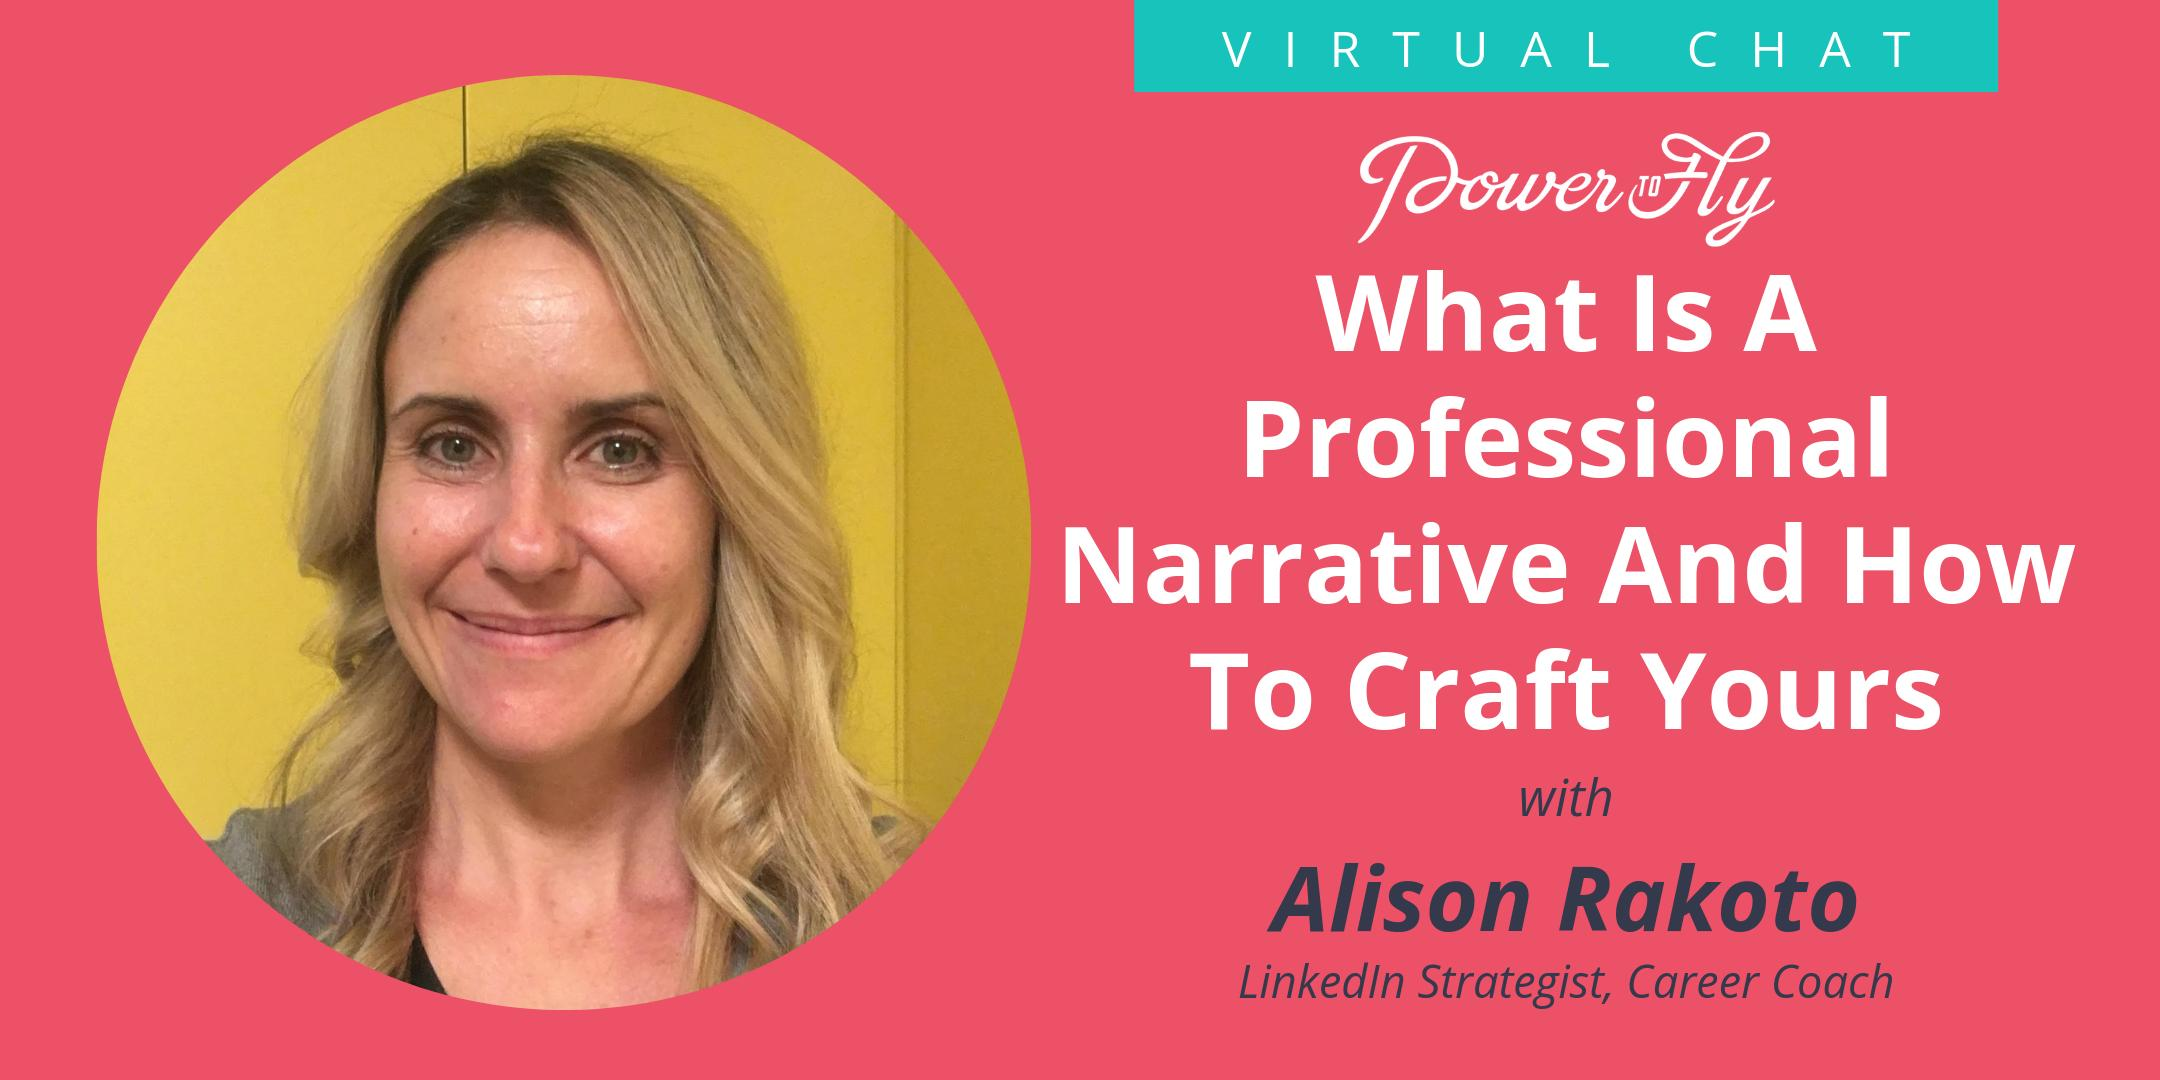 What Is A Professional Narrative And How To Craft Yours